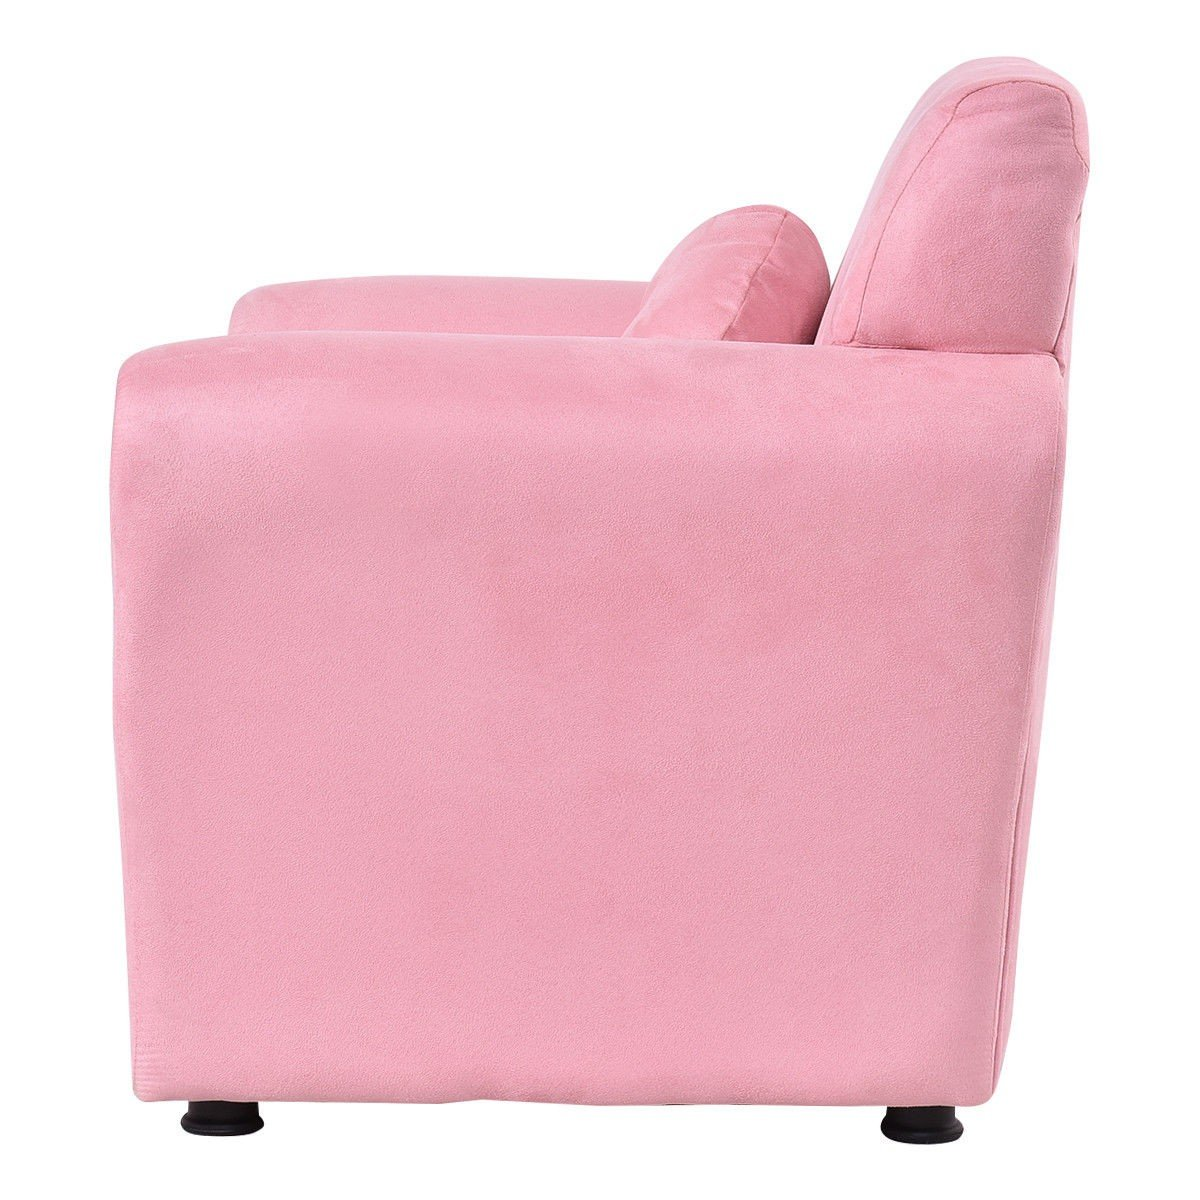 Living Room Armrest Chair Kids Sofa with Pillow  sc 1 st  By Choice Products & Living Room Armrest Chair Kids Sofa with Pillow u2013 By Choice Products